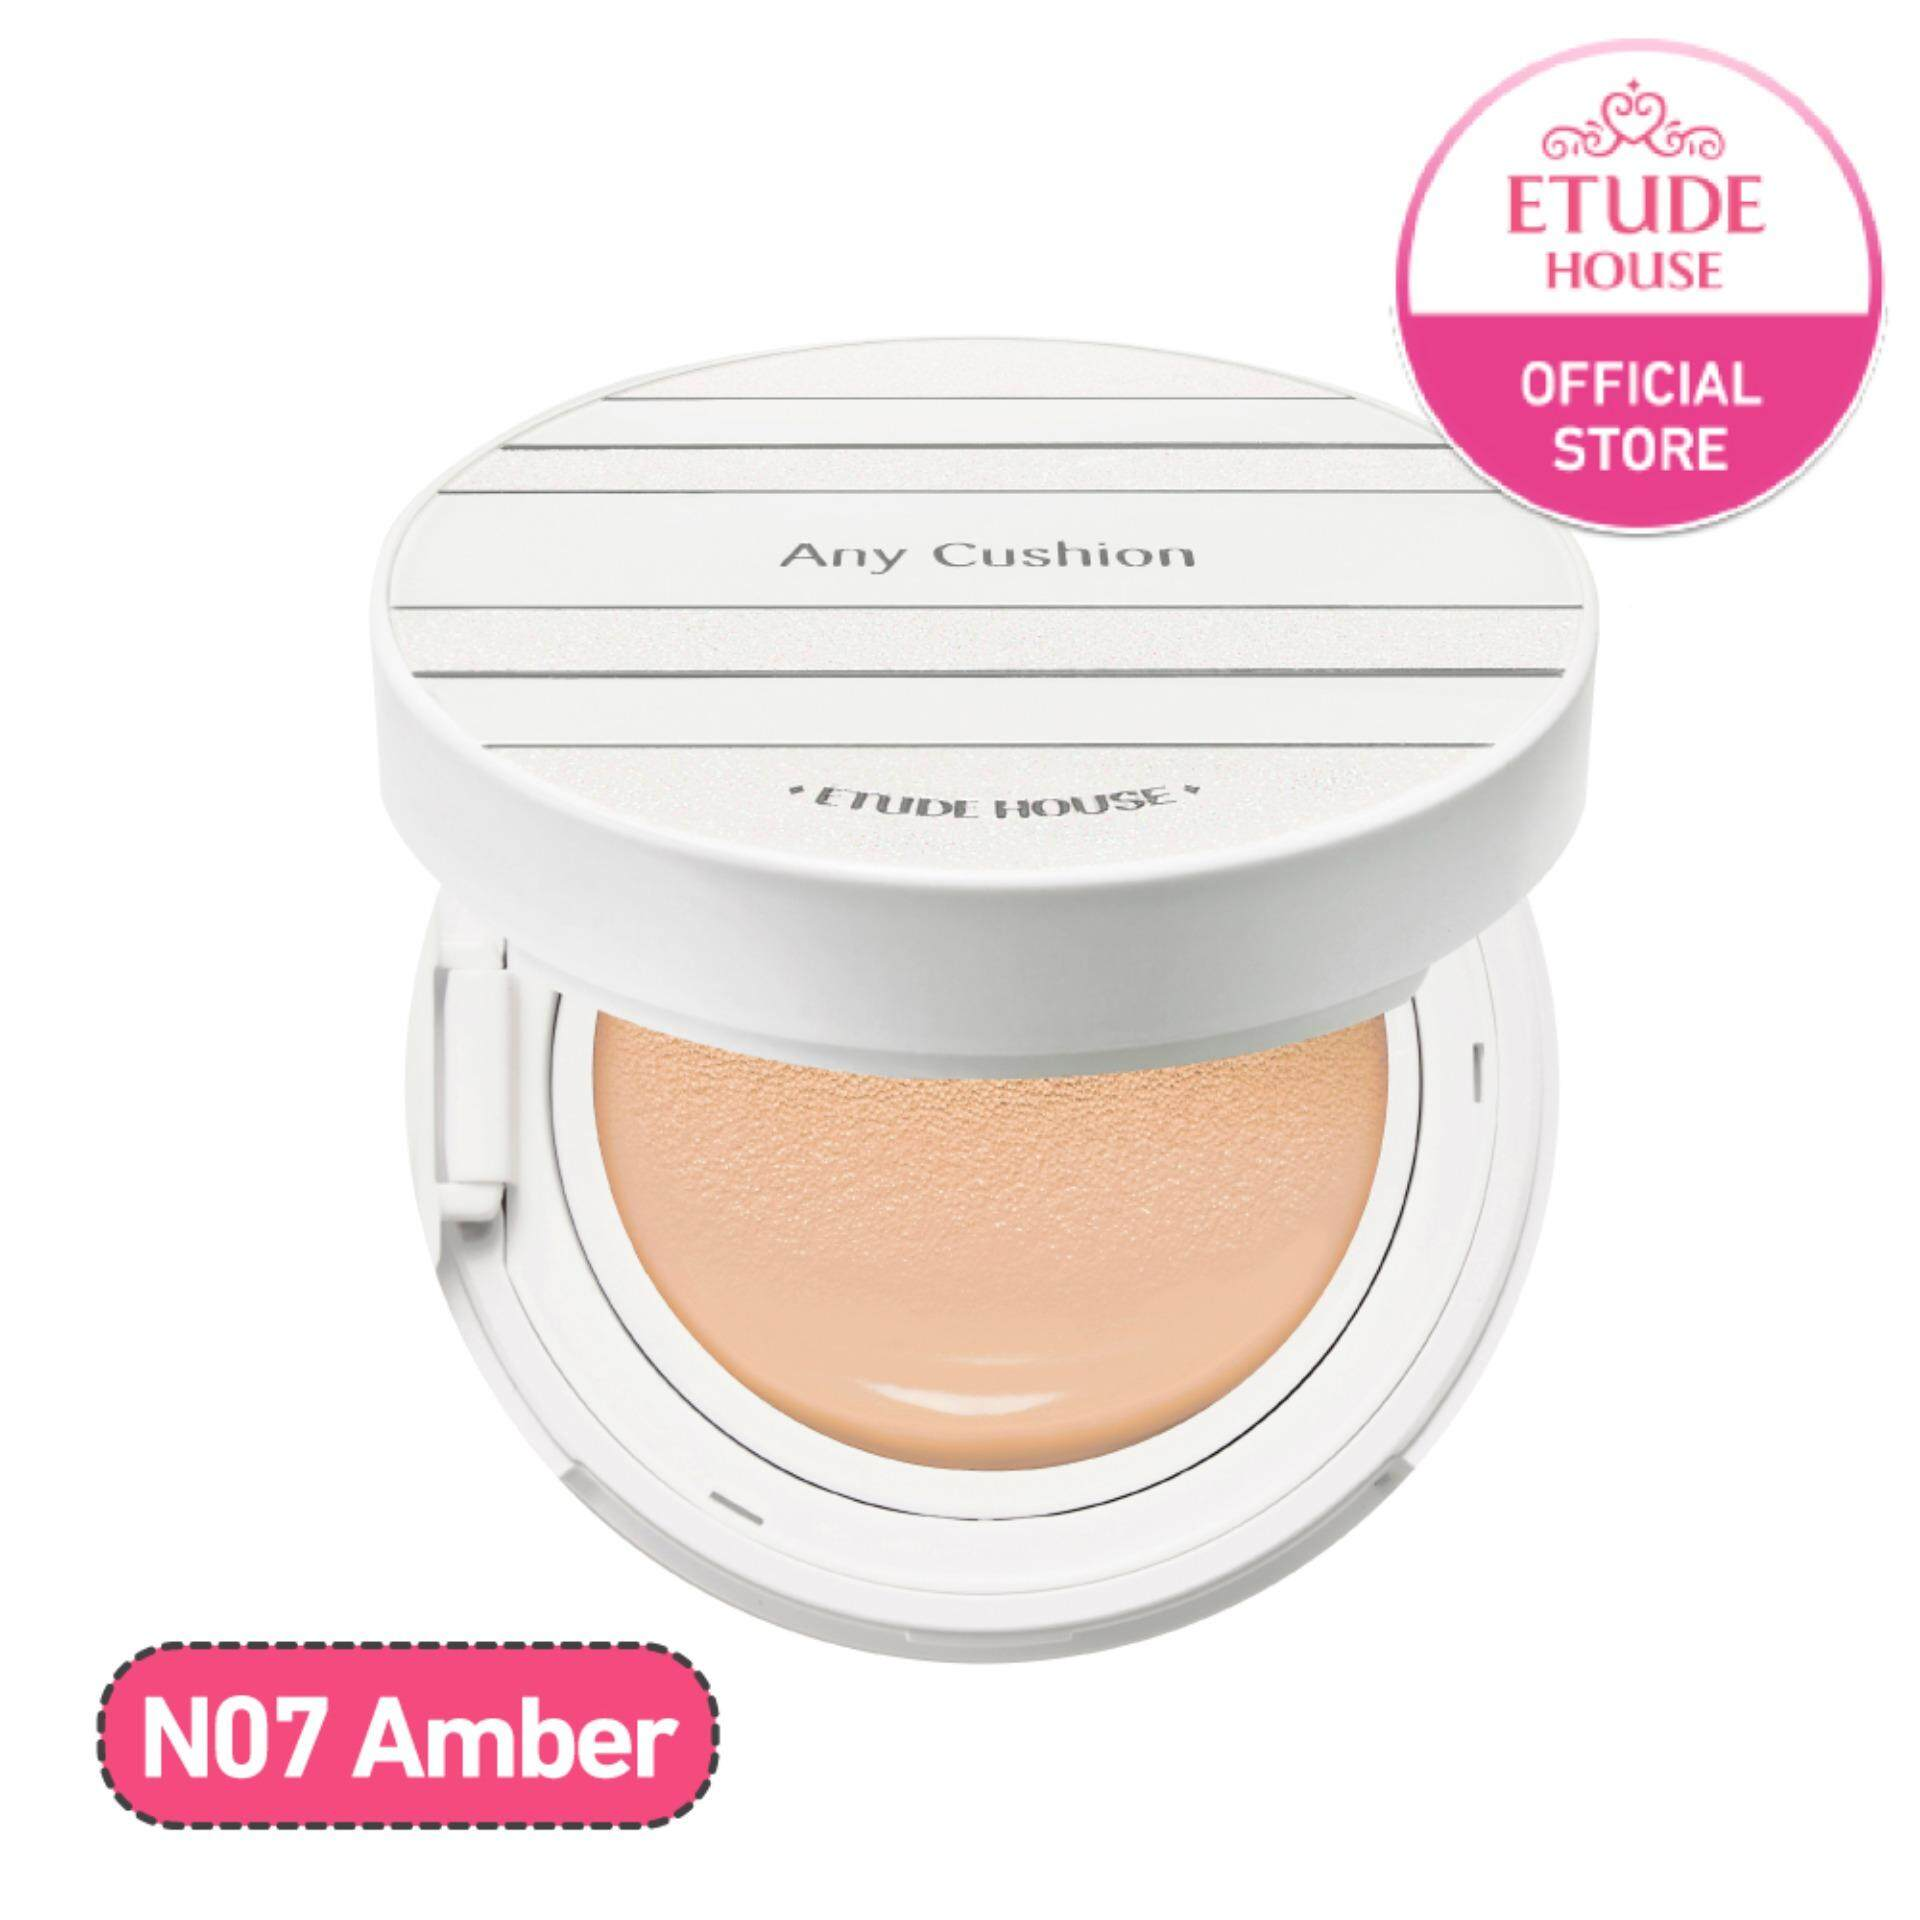 ETUDE HOUSE Any Cushion Aqua Touch (15 g)